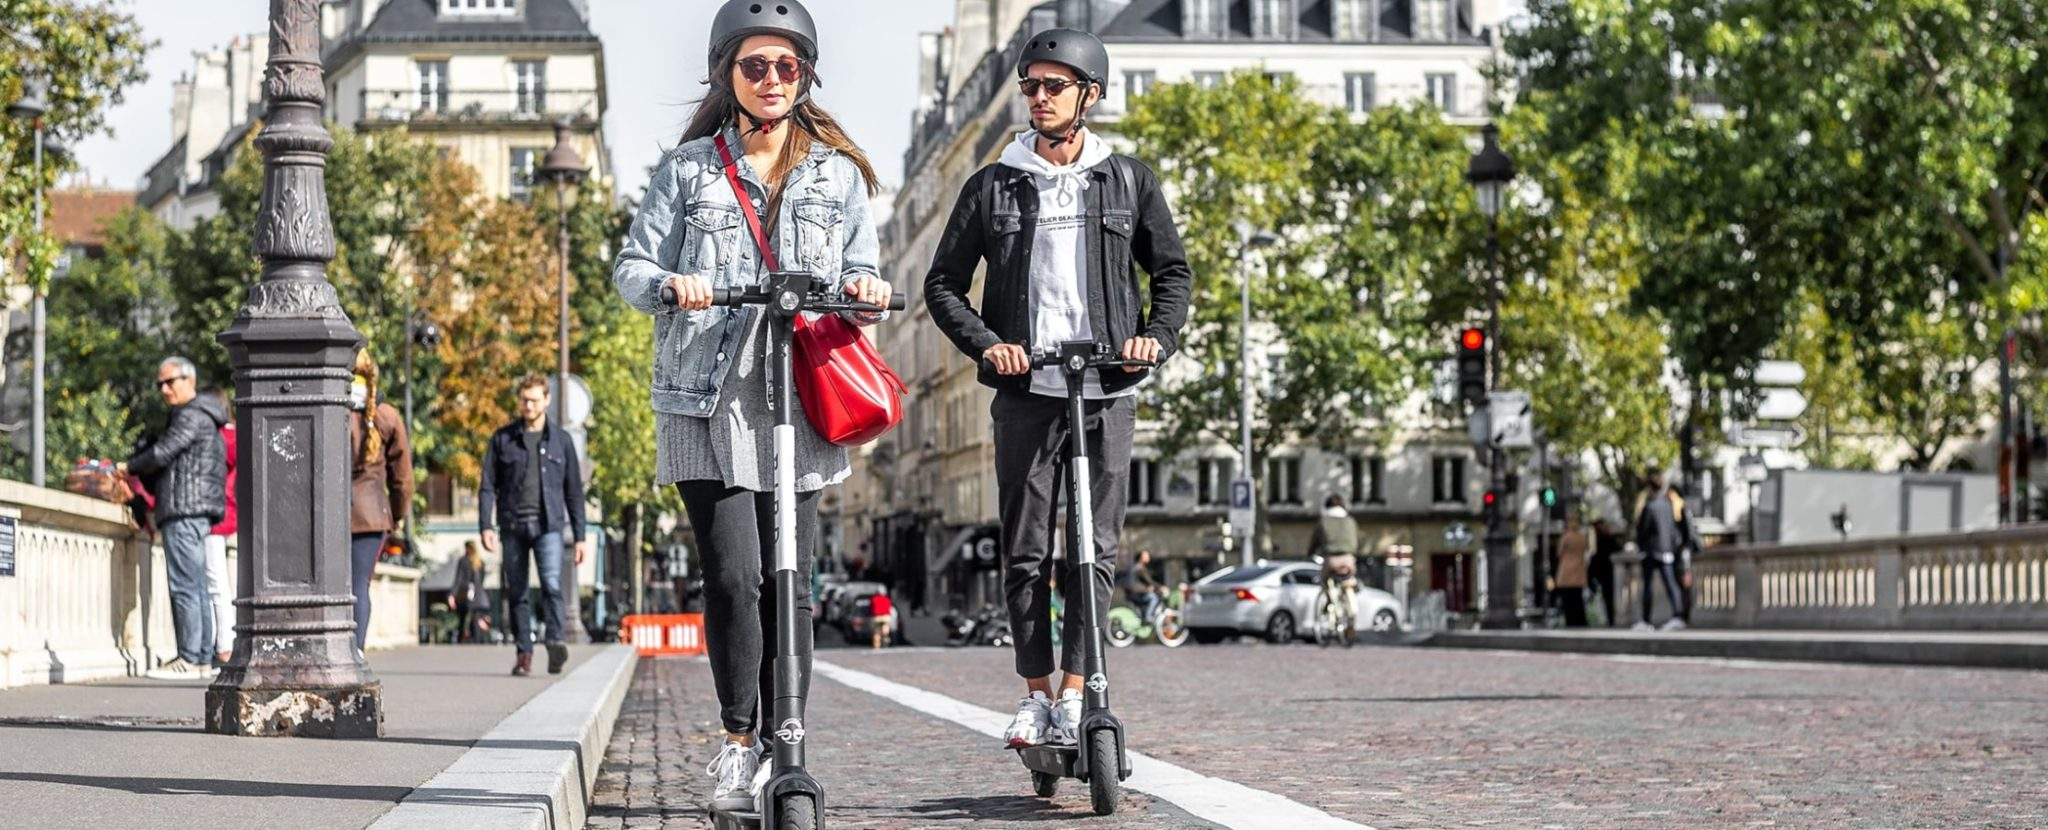 Girl and boy on e-scooter in city